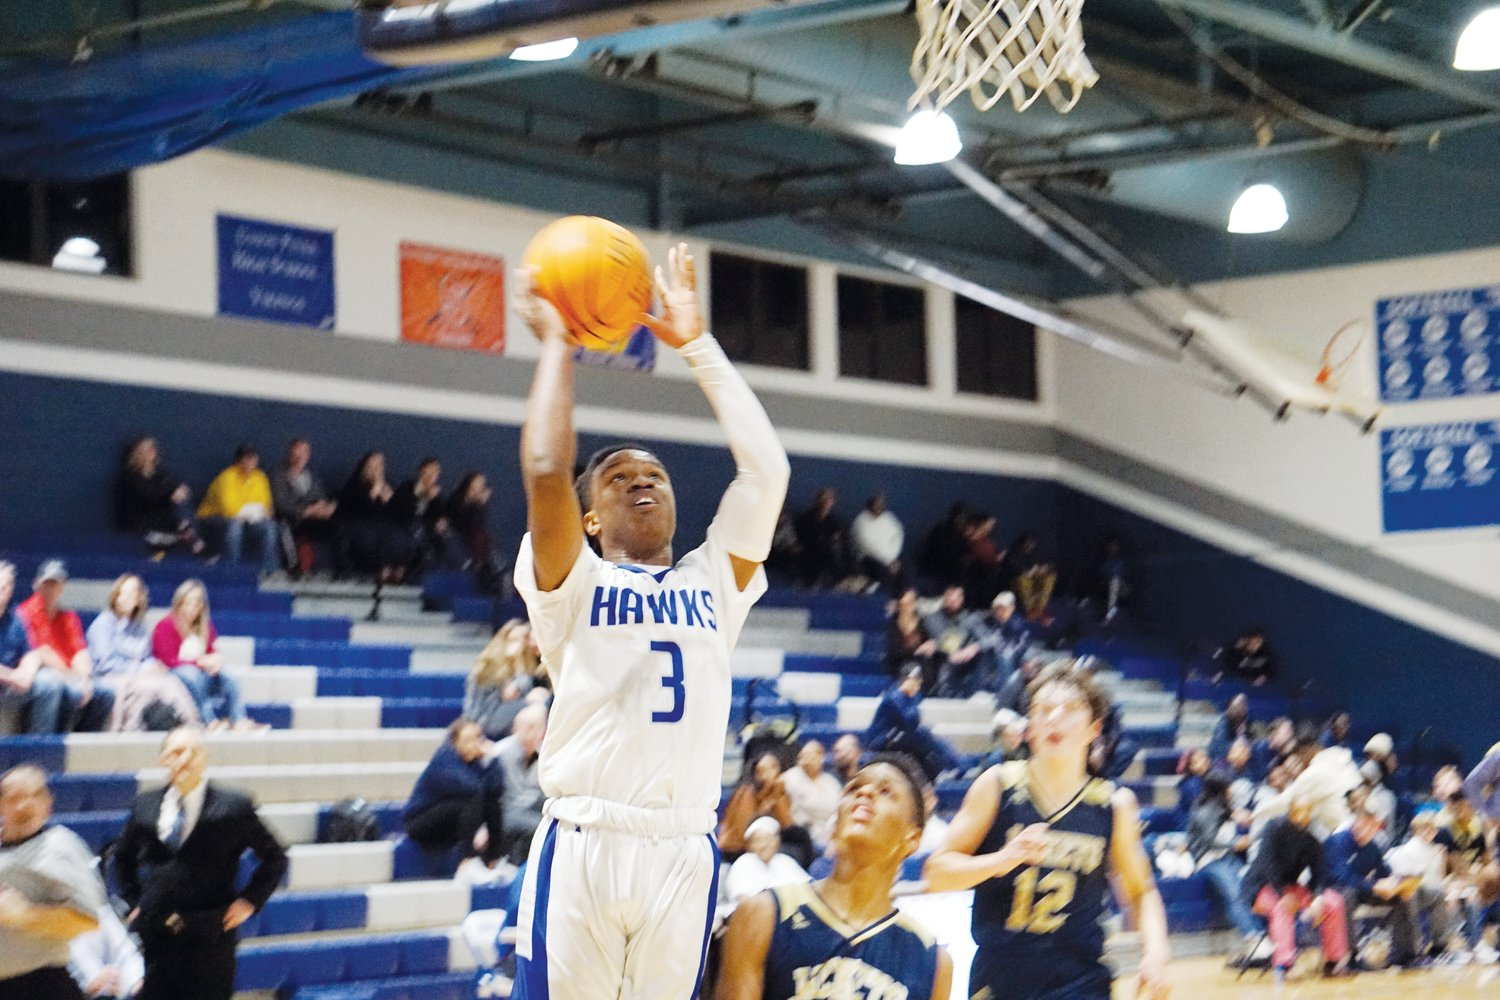 Travion Sanders gets up for a tough bucket during Friday night's game. The senior led Triton with 17 points, 13 of which fueled the Hawks' comeback in the fourth quarter.